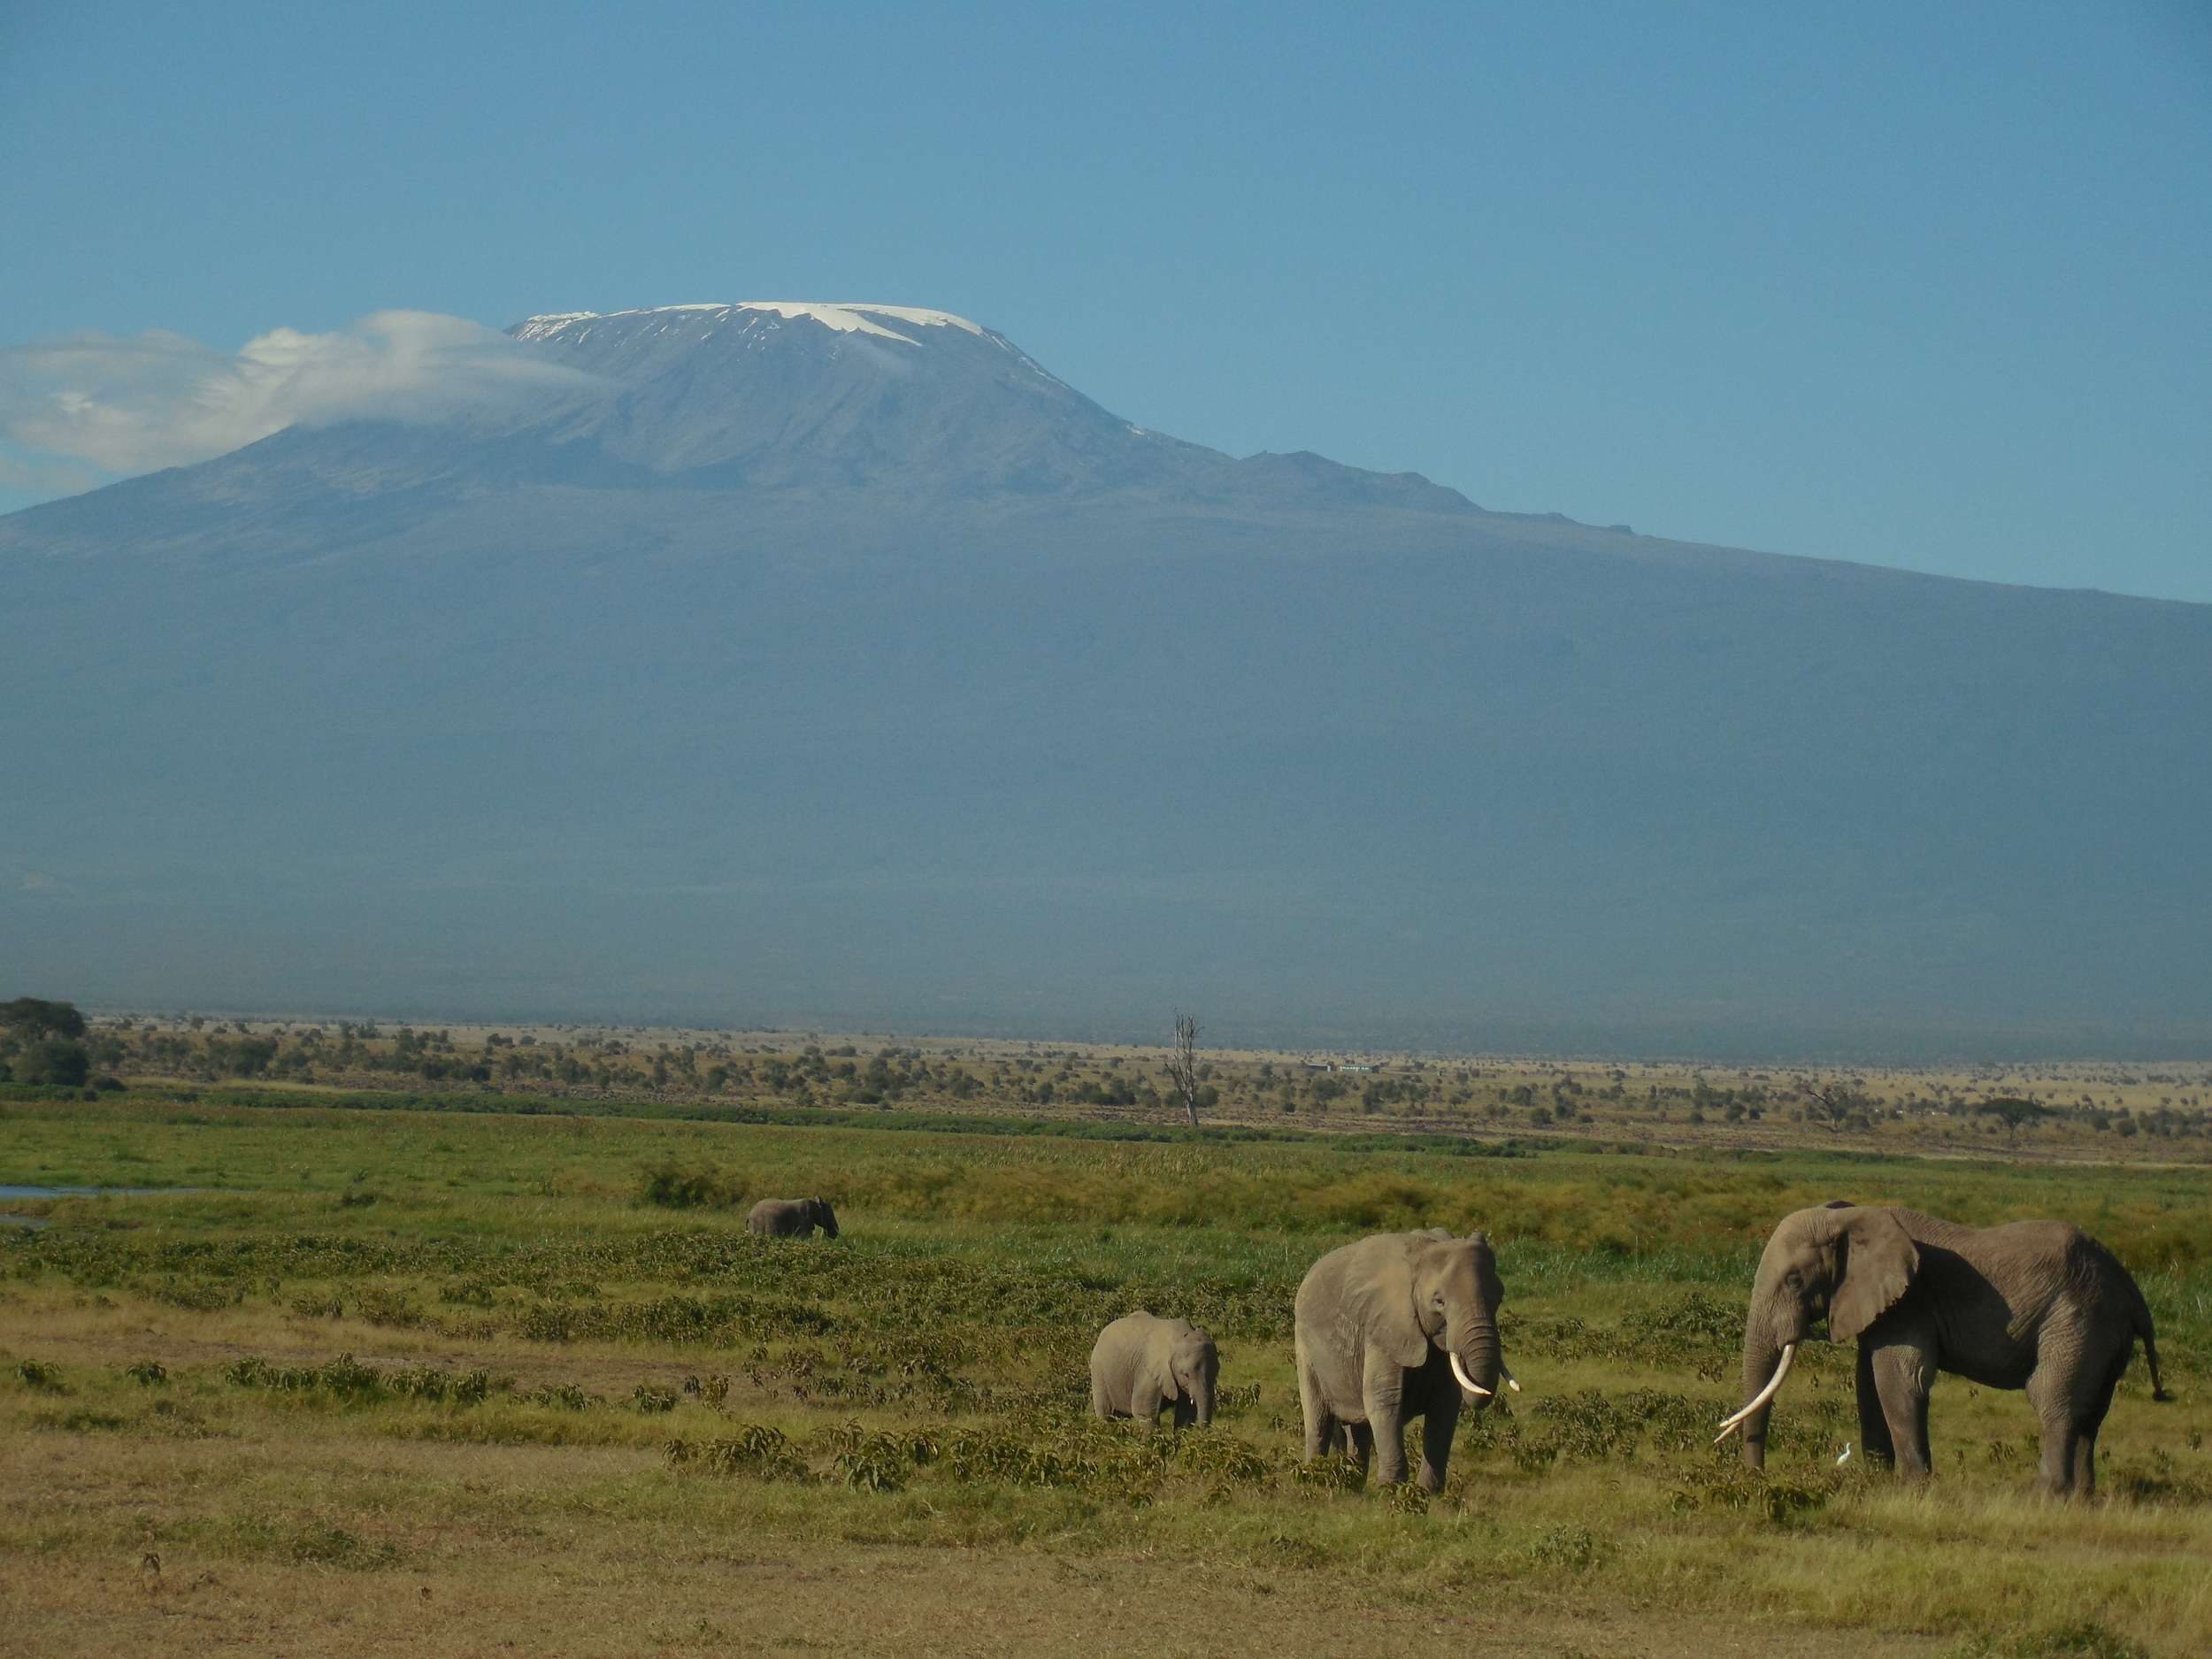 Kenya Elephants at Amboseli 2014 © Flyga Twiga LLC